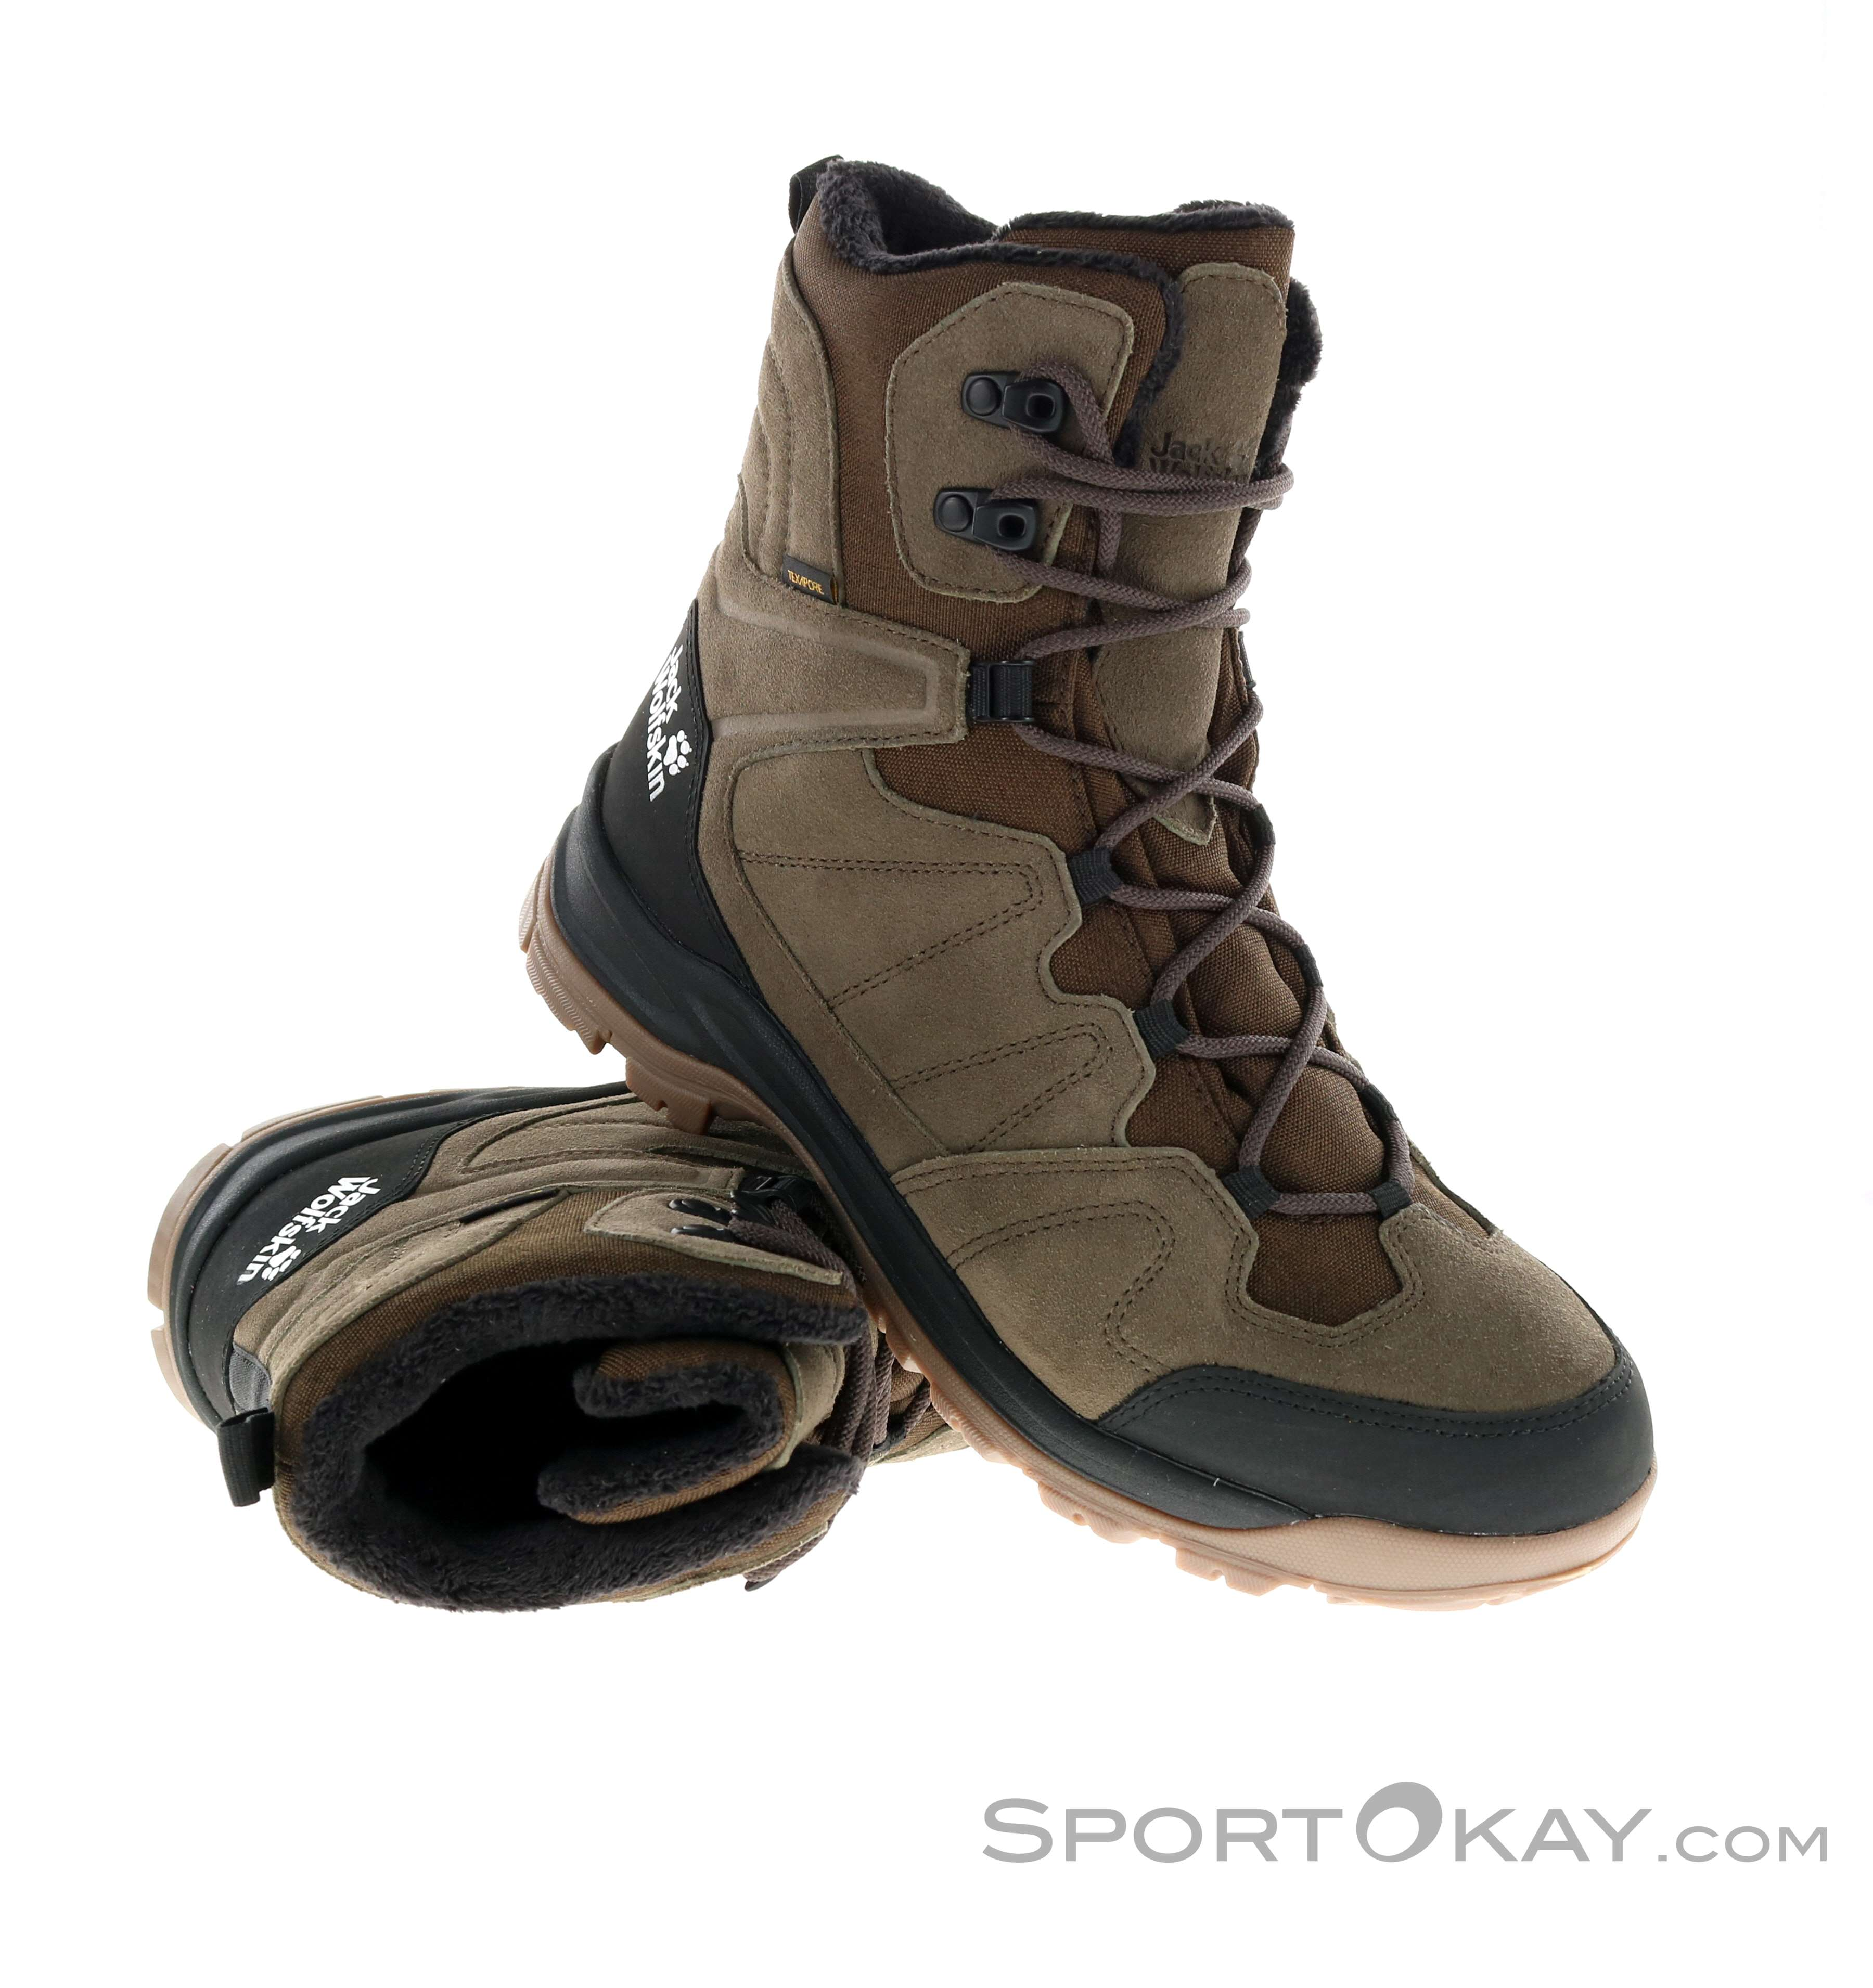 Jack Wolfskin Jack Wolfskin Thunder Bay Texapore High Mens Winter Shoes